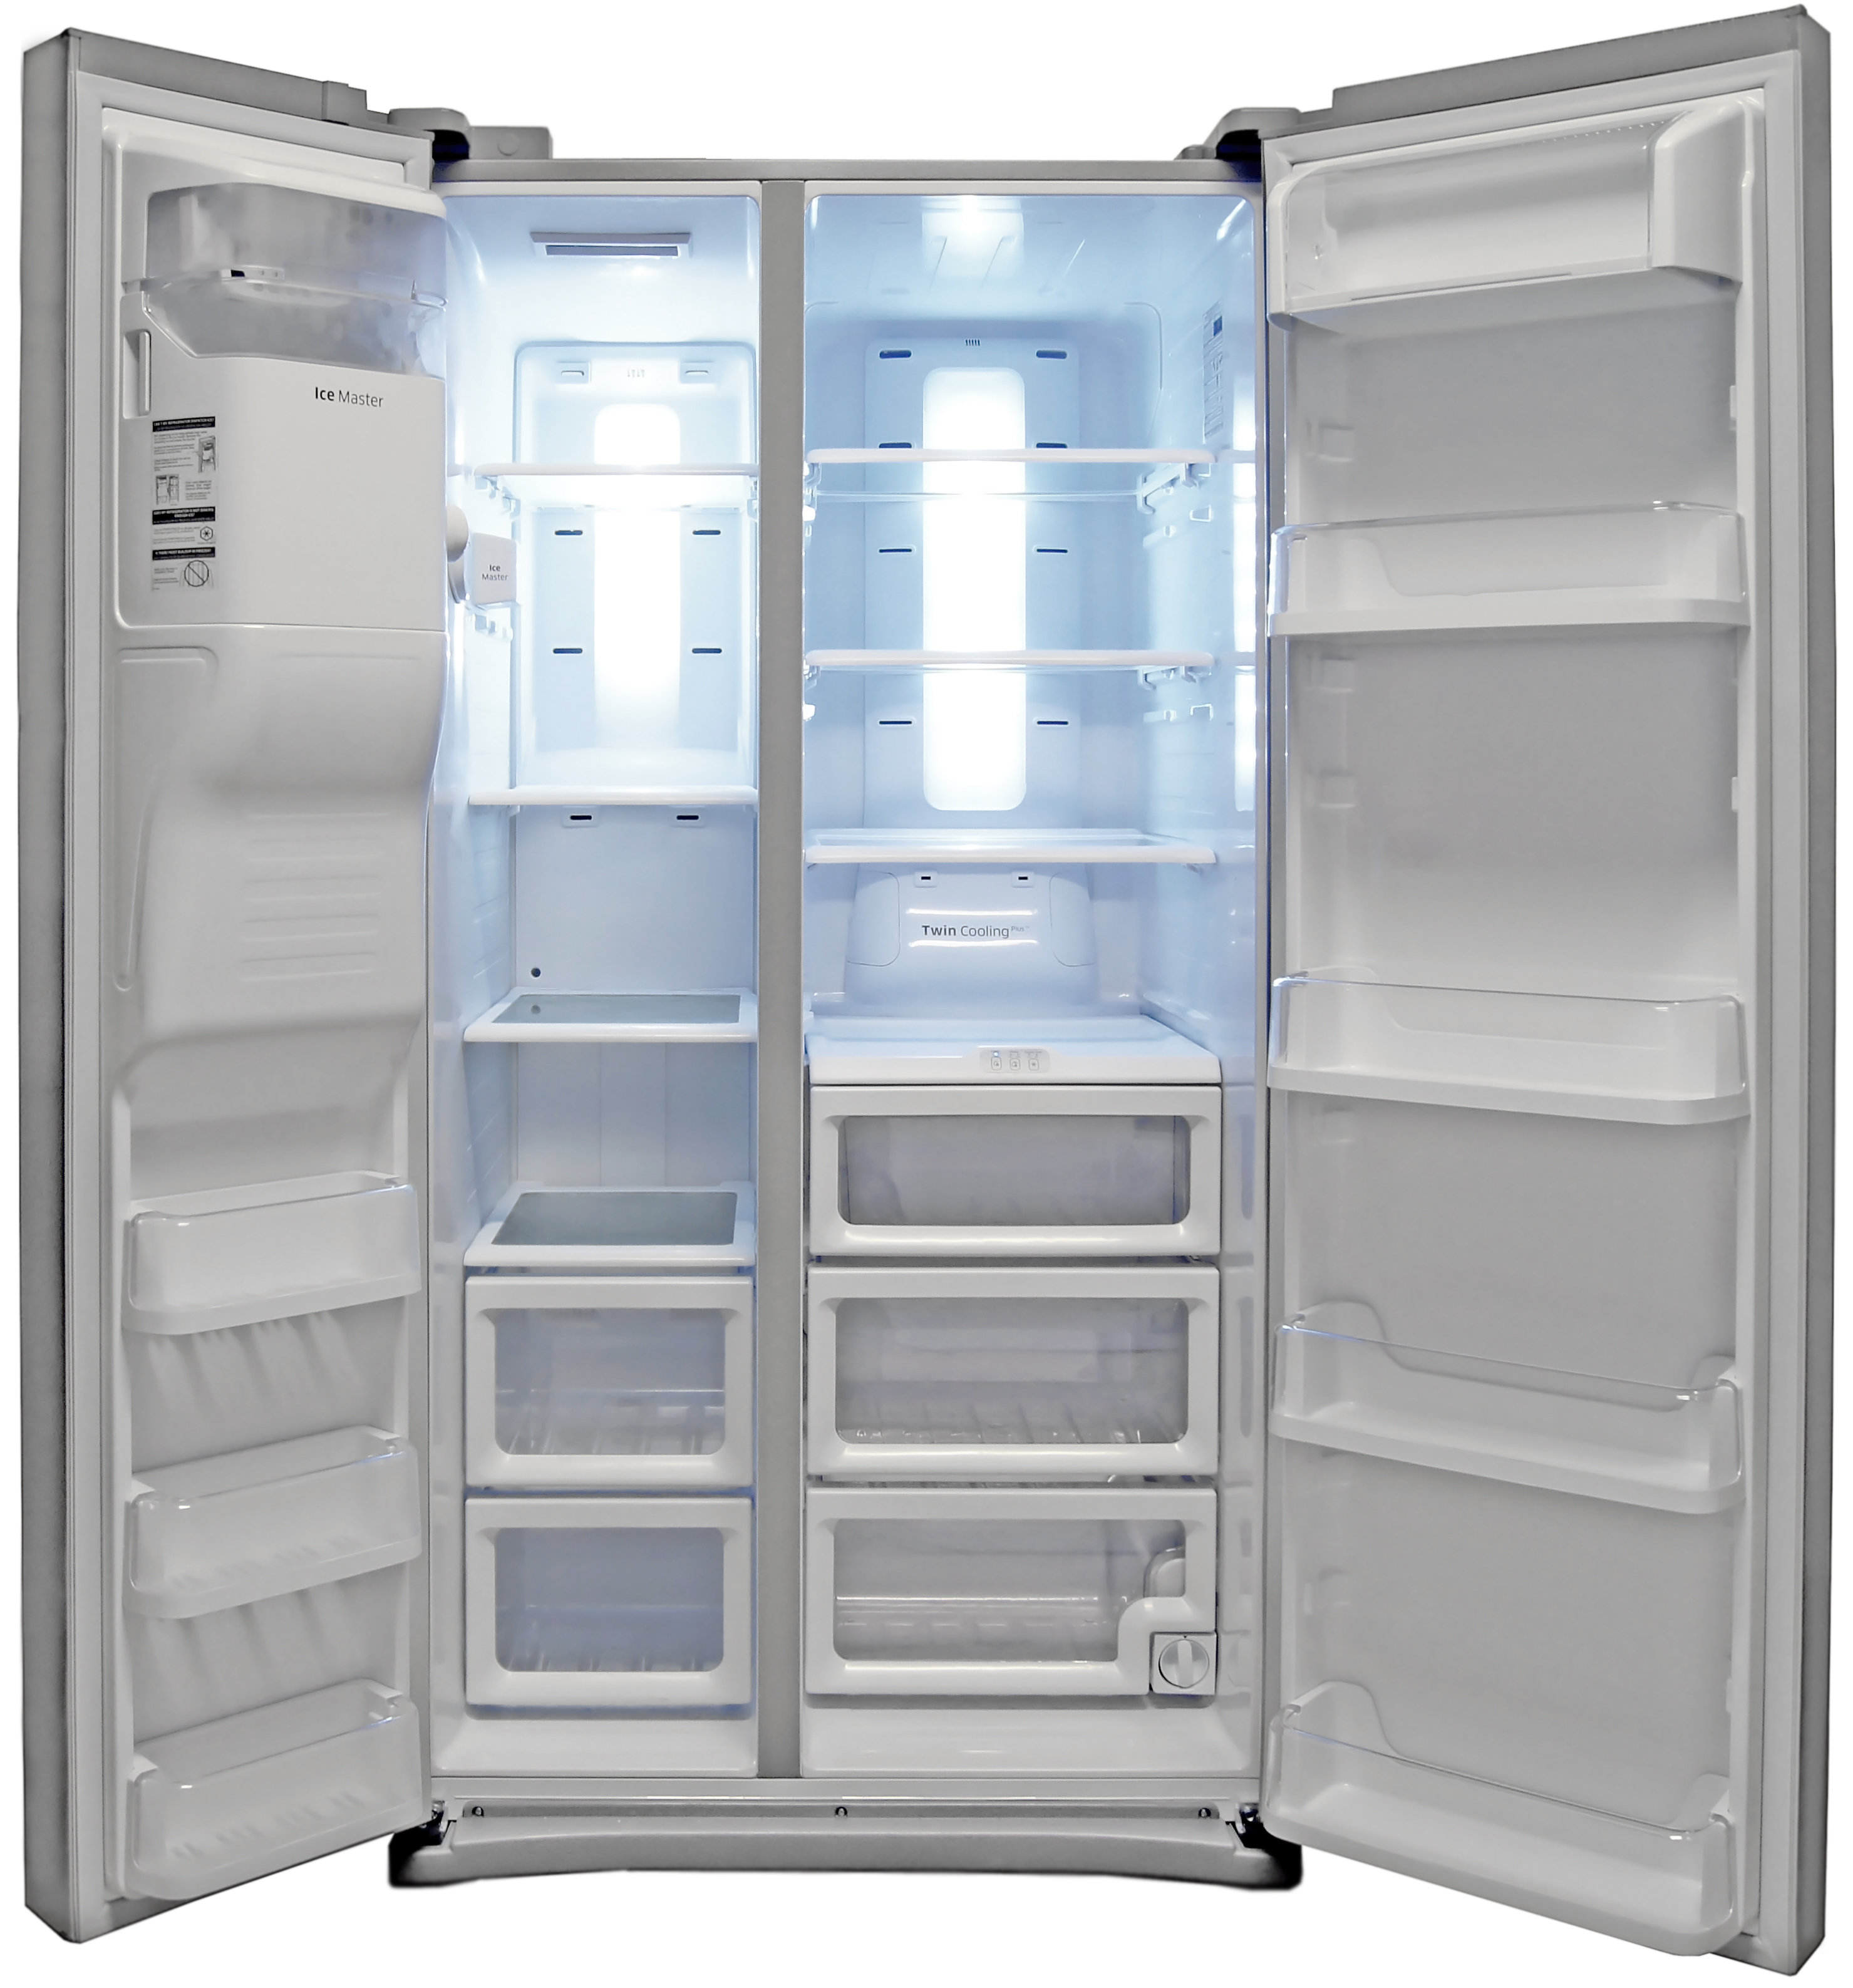 Both of the Samsung RS25H5121's compartments are exceptionally spacious.